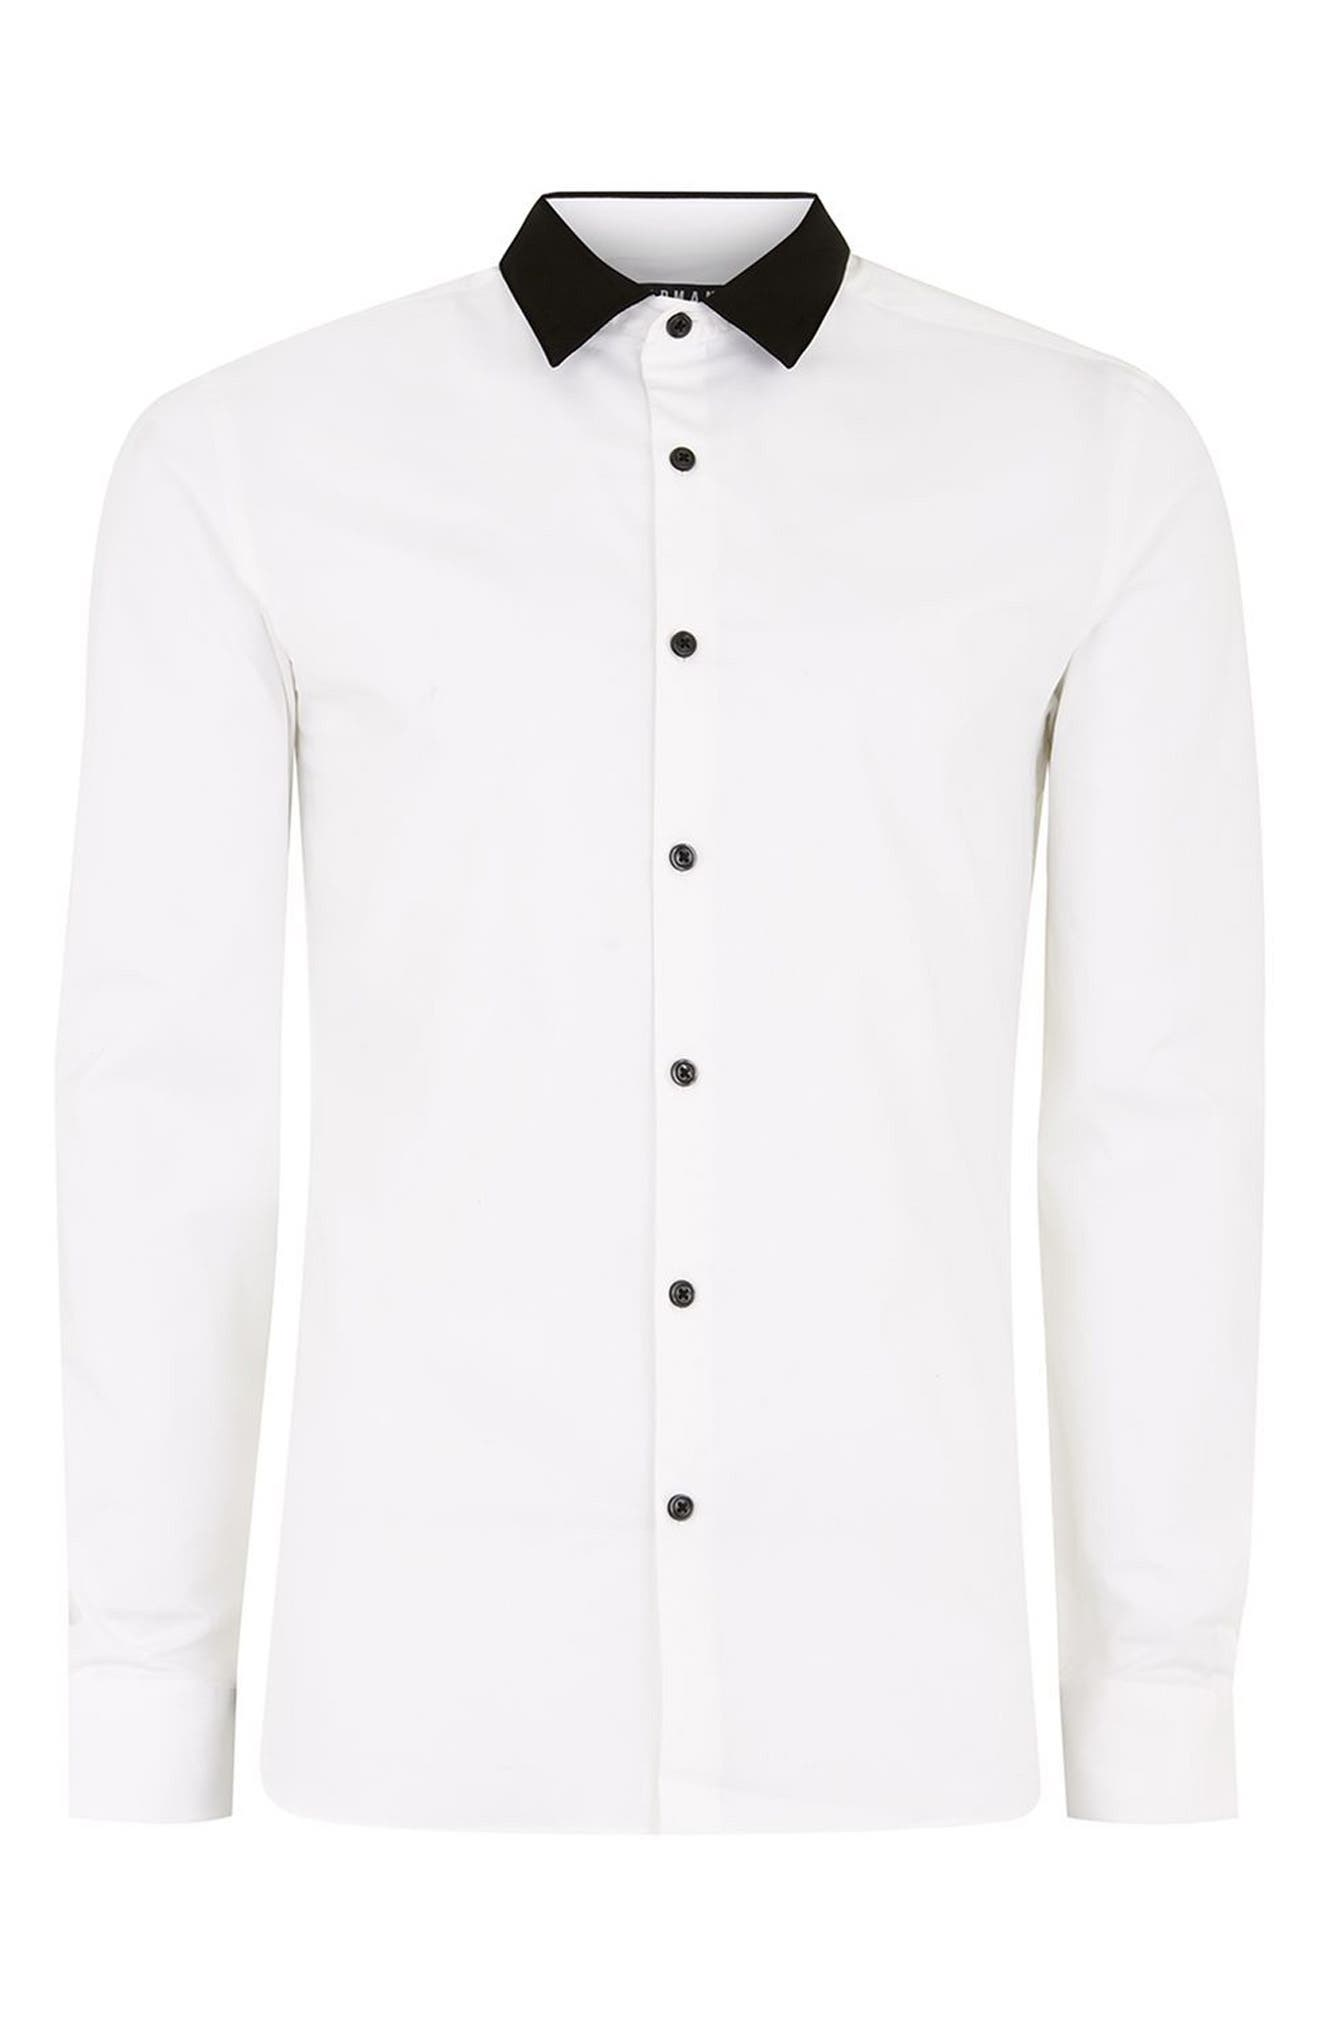 Muscle Fit Contrast Collar Sport Shirt,                             Alternate thumbnail 6, color,                             White Multi